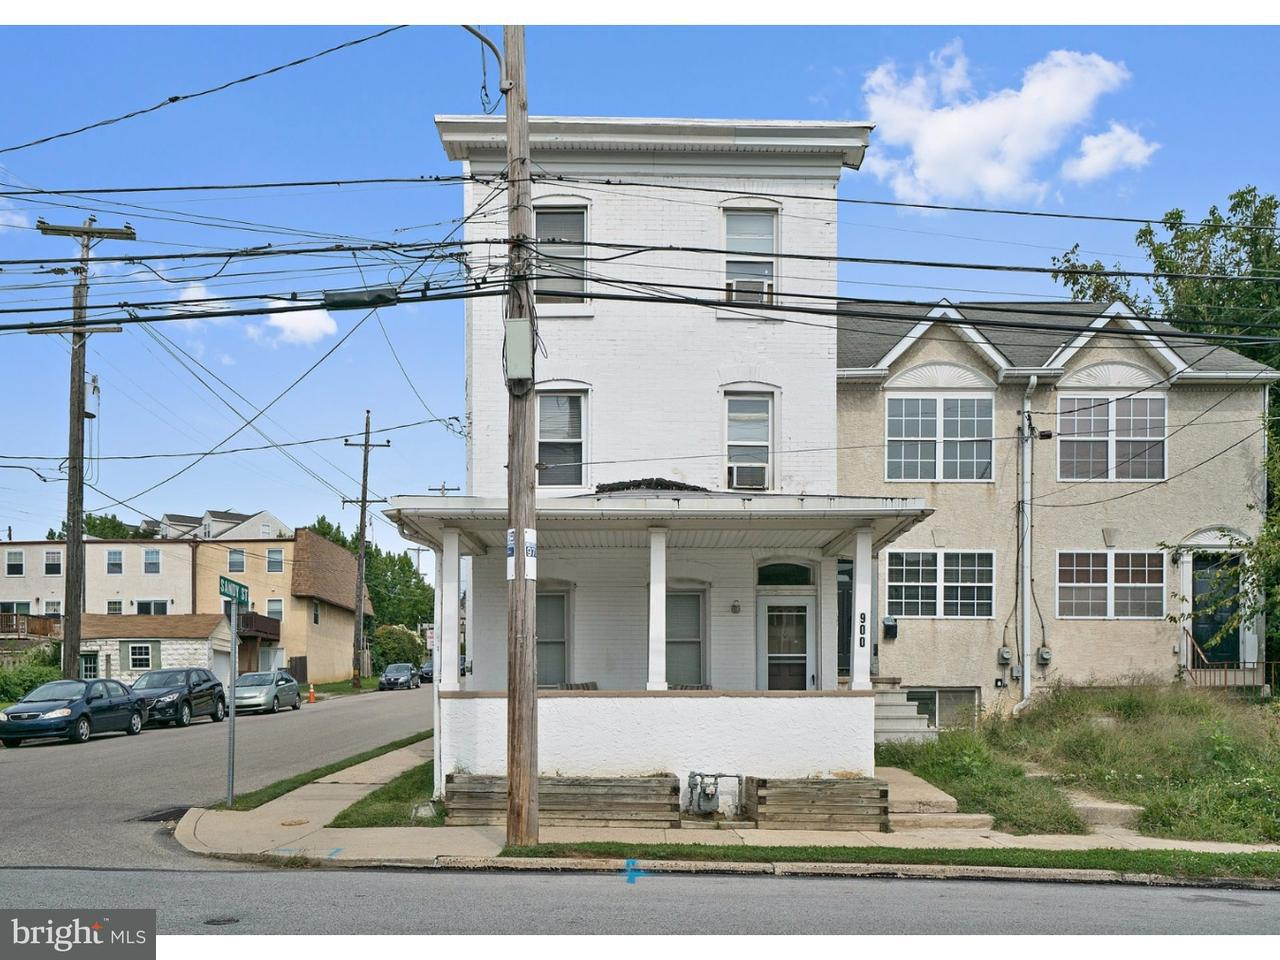 Single Family Home for Sale at 900 E HECTOR Street Conshohocken, Pennsylvania 19428 United States